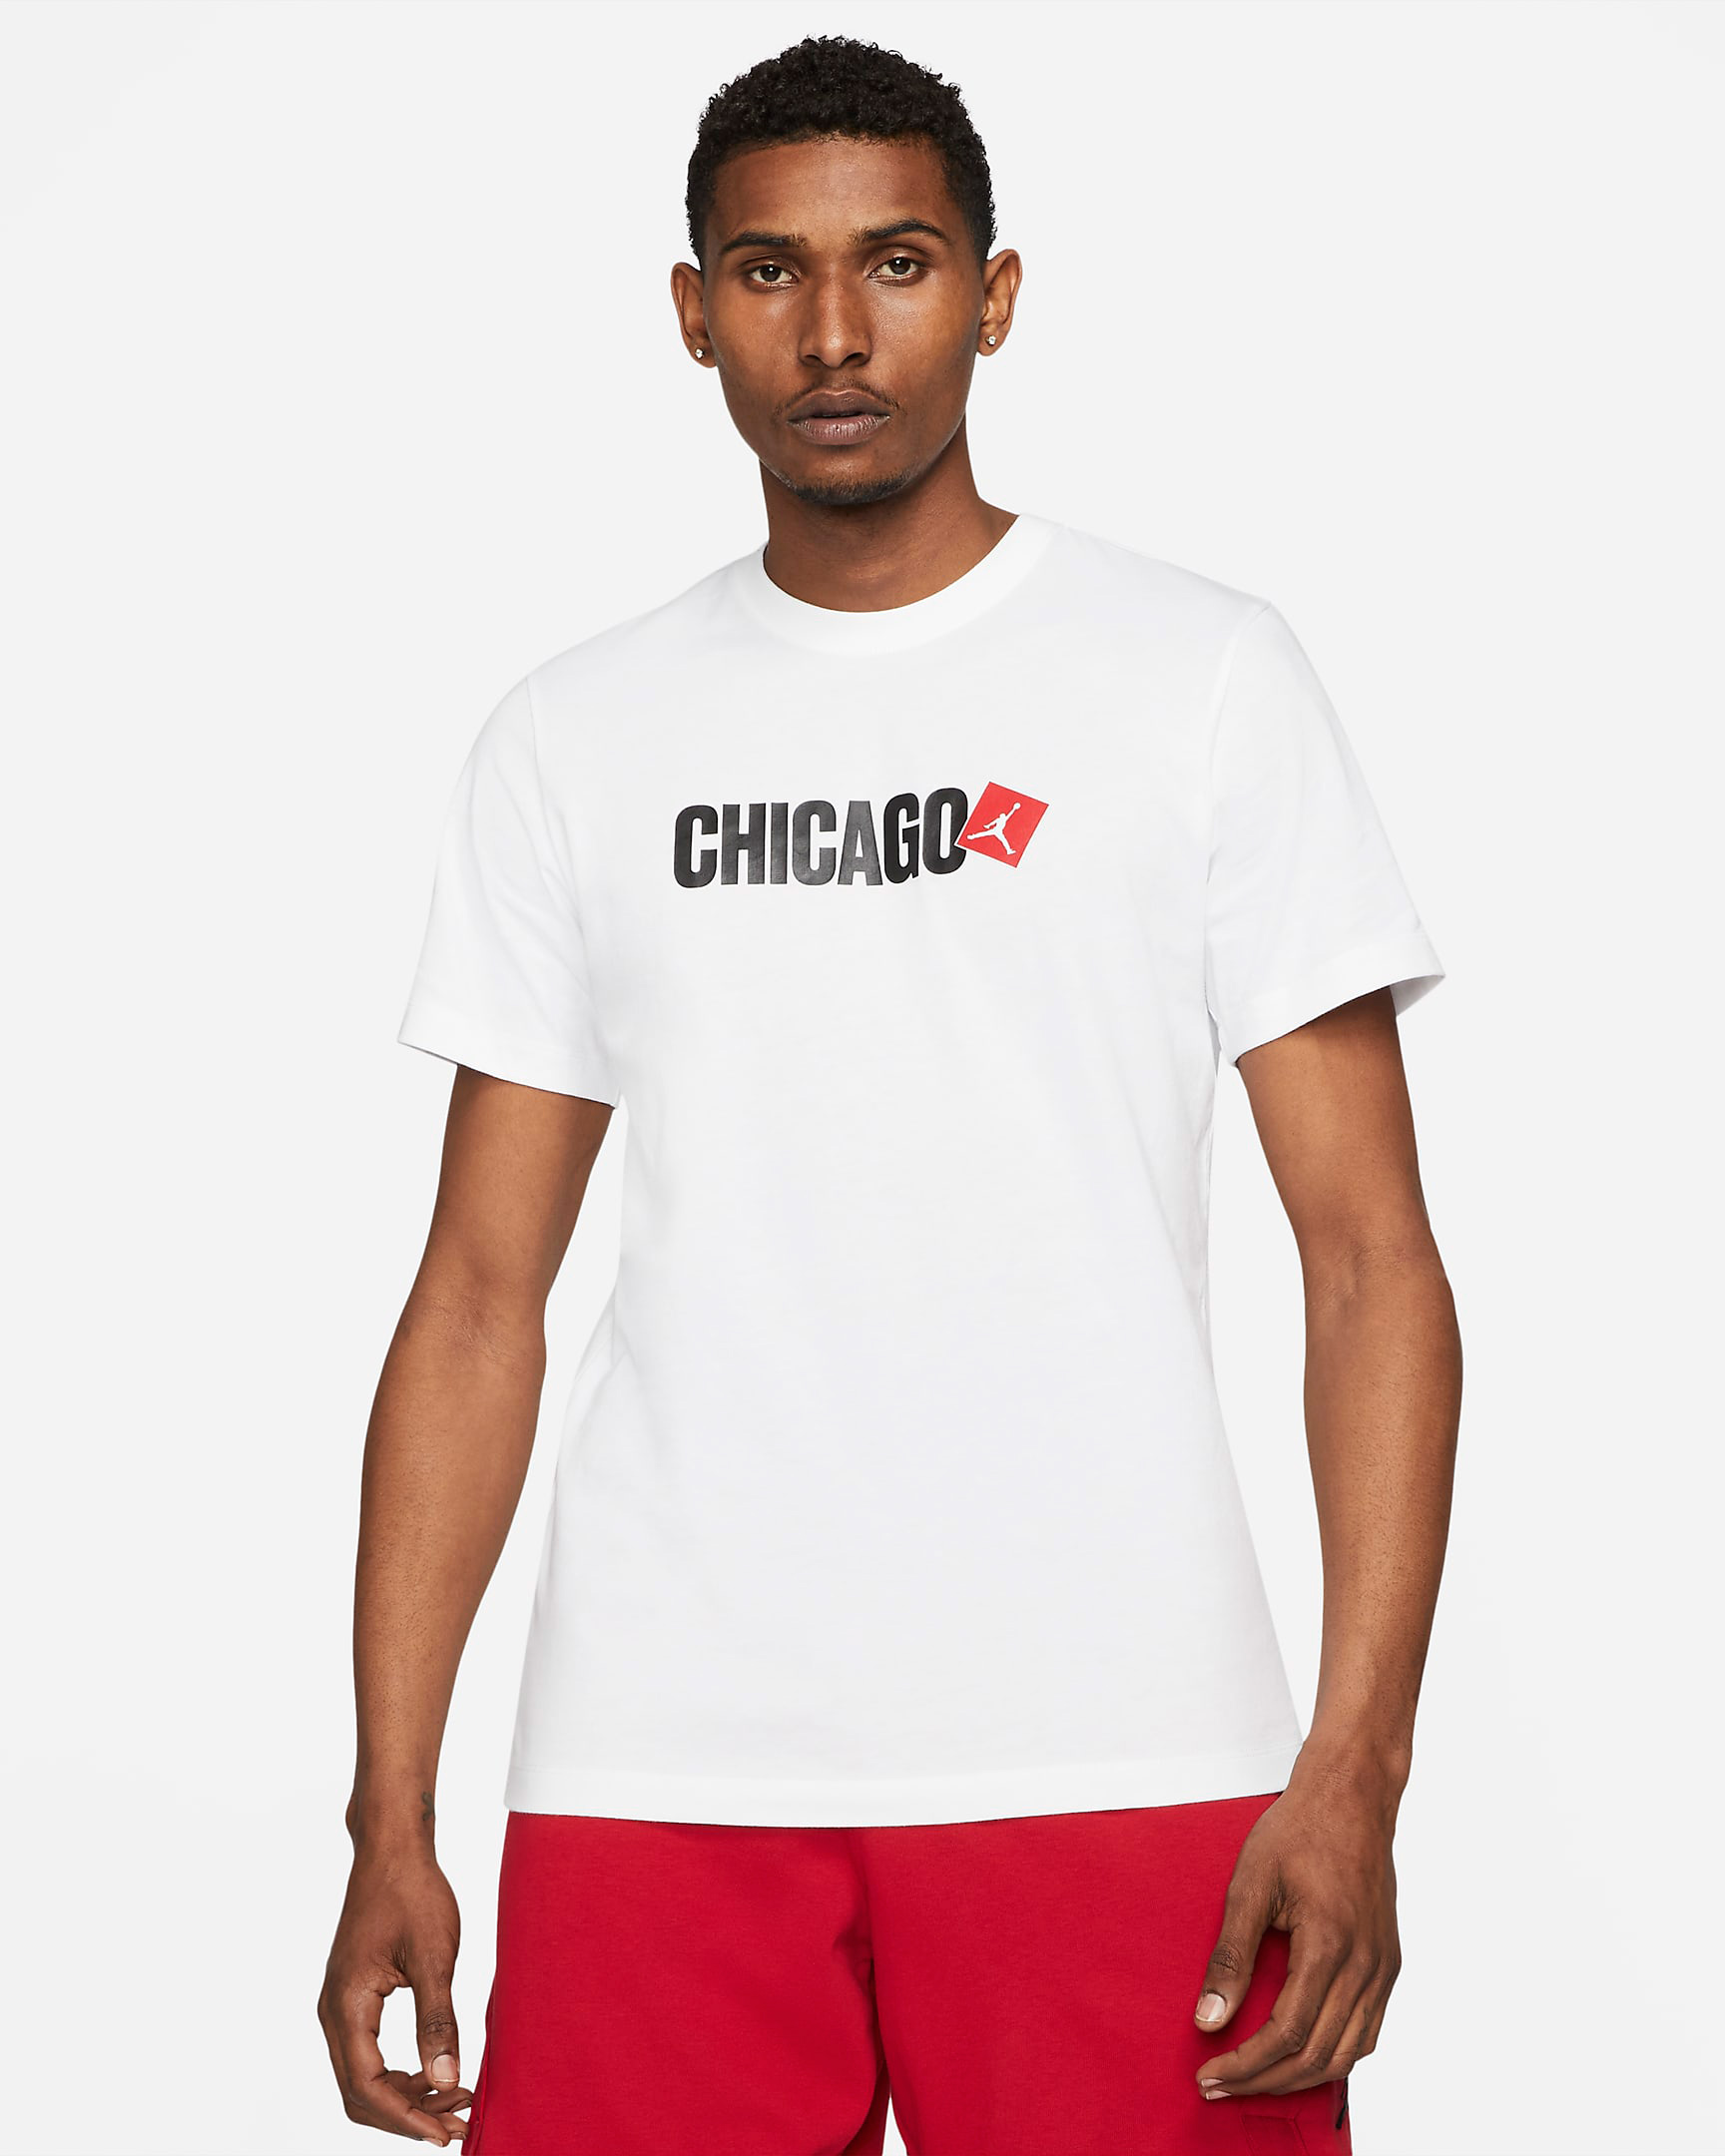 jordan-los-angeles-shirt-white-2